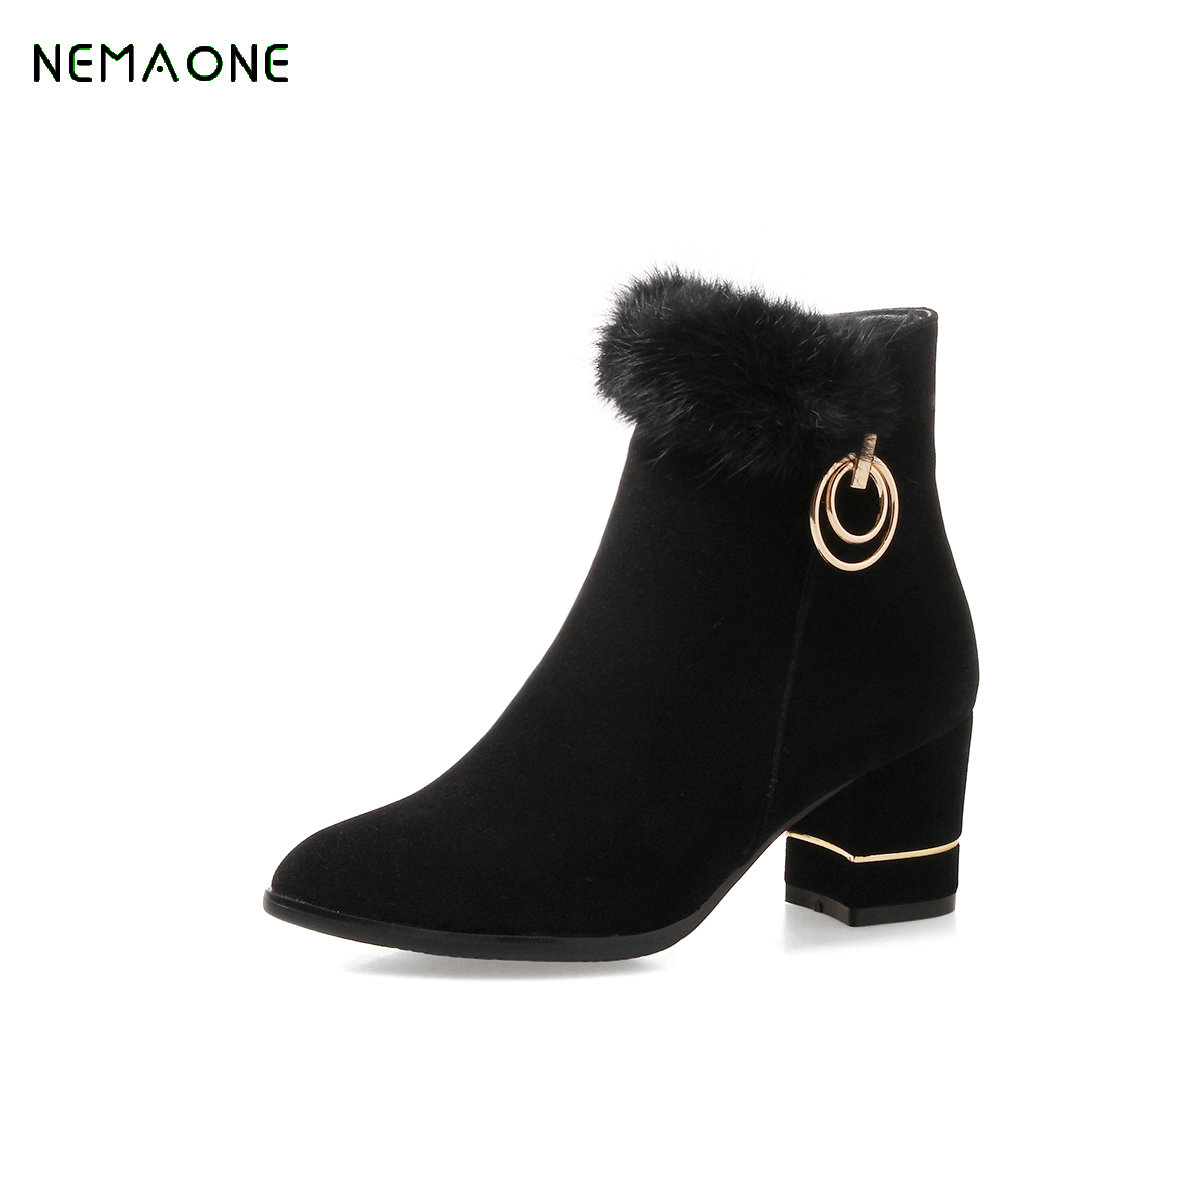 NEMAONE  Fashion Black Martin Boots Women 2017 New Autumn Platform Shoes Woman Party Ankle Boots High HeelsNEMAONE  Fashion Black Martin Boots Women 2017 New Autumn Platform Shoes Woman Party Ankle Boots High Heels